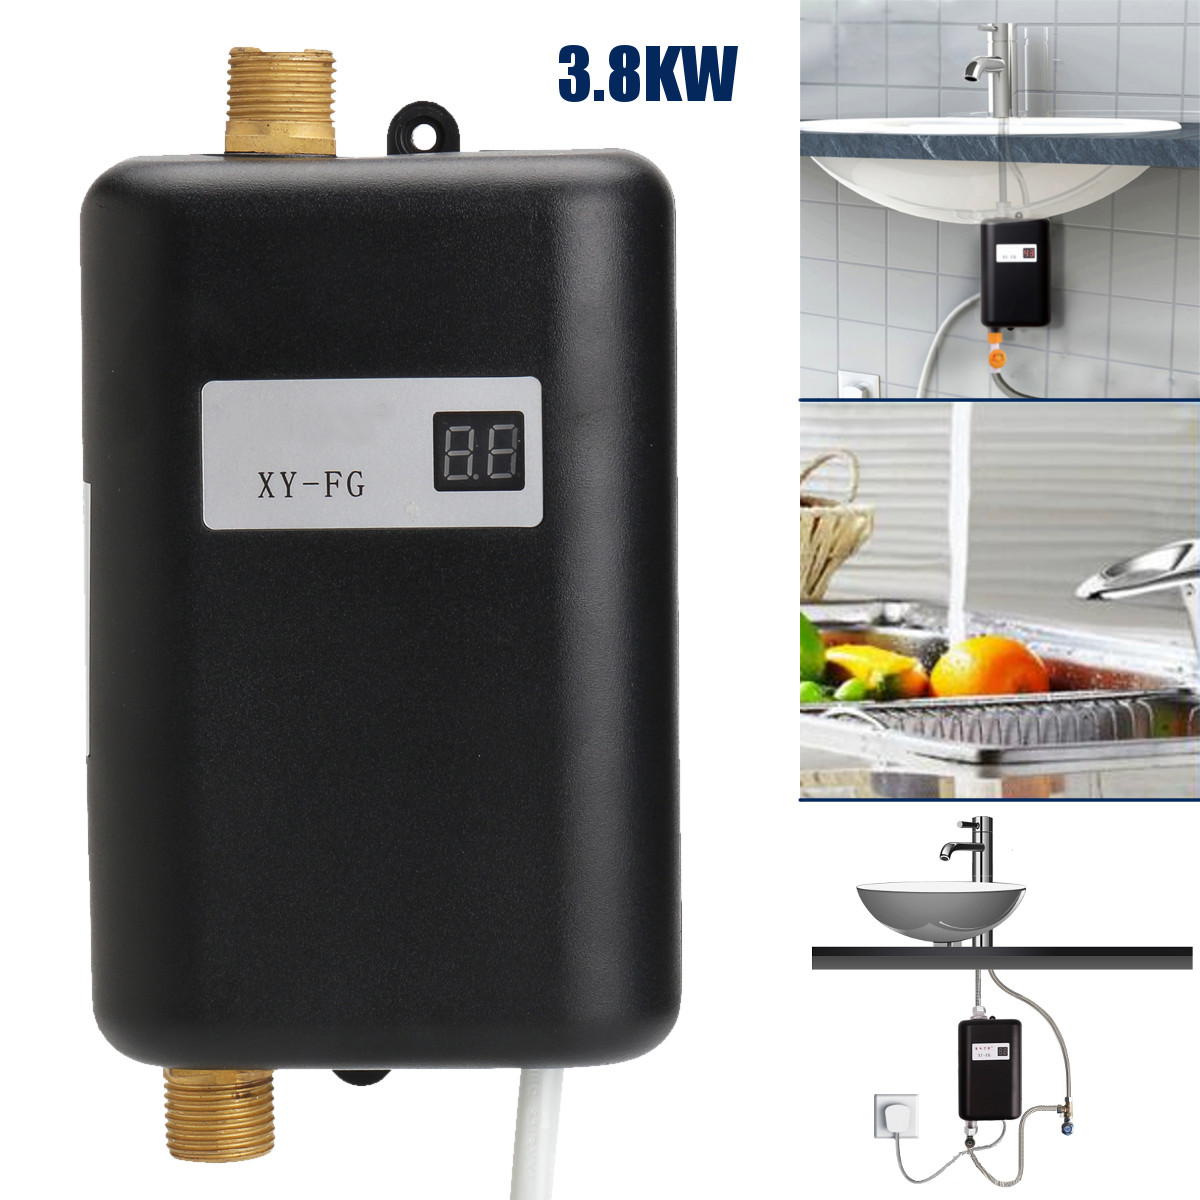 3800W/3400W Electric Water Heater Instant Tankless Water Heater 220V 3.8KW Temperature Display Heating Shower Universal(China)